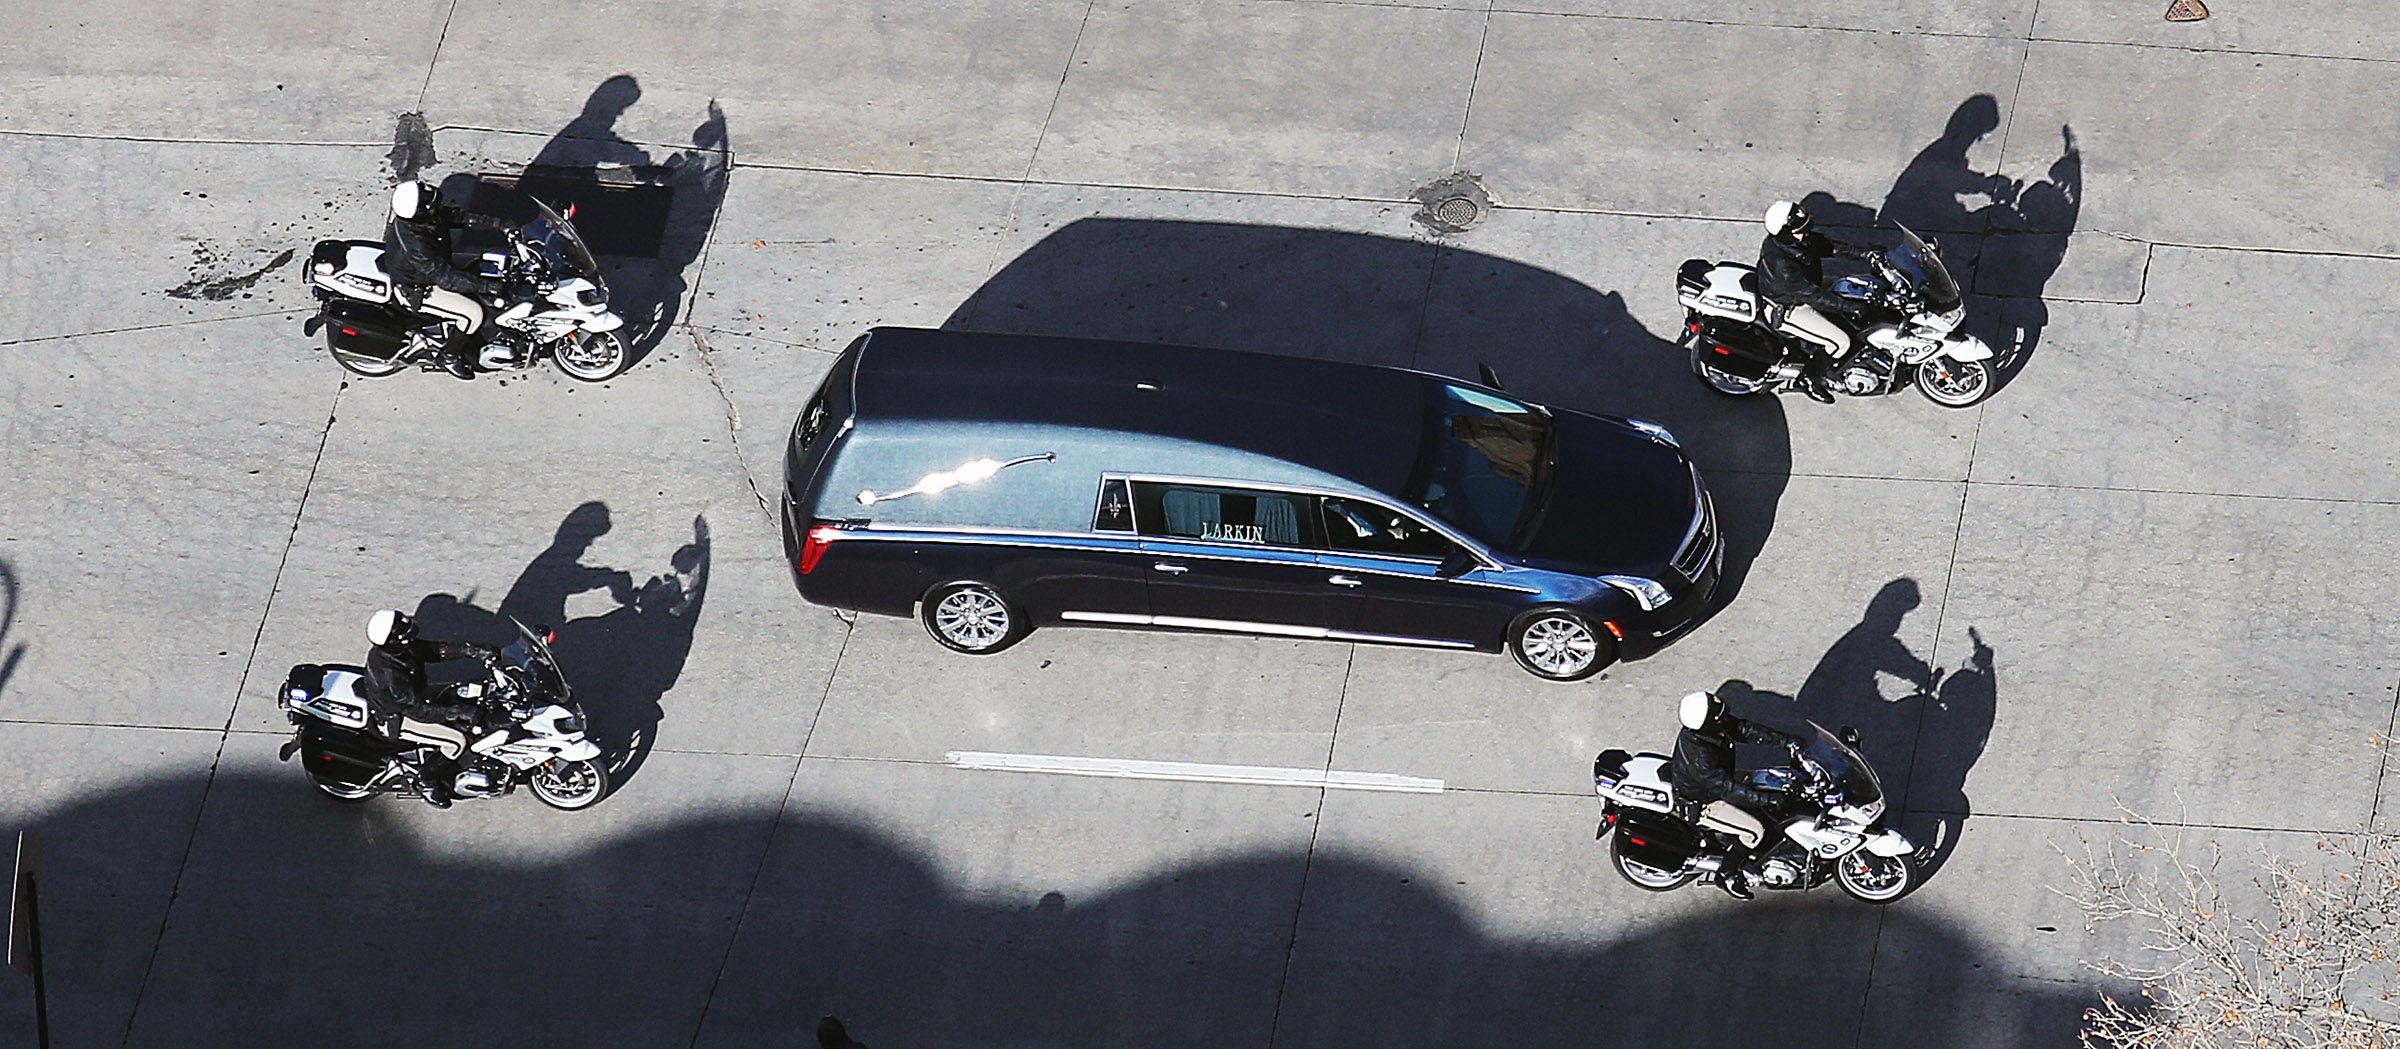 The funeral procession for Church President Thomas S. Monson makes its way to the Salt Lake City Cemetery on Friday, Jan. 12, 2018.